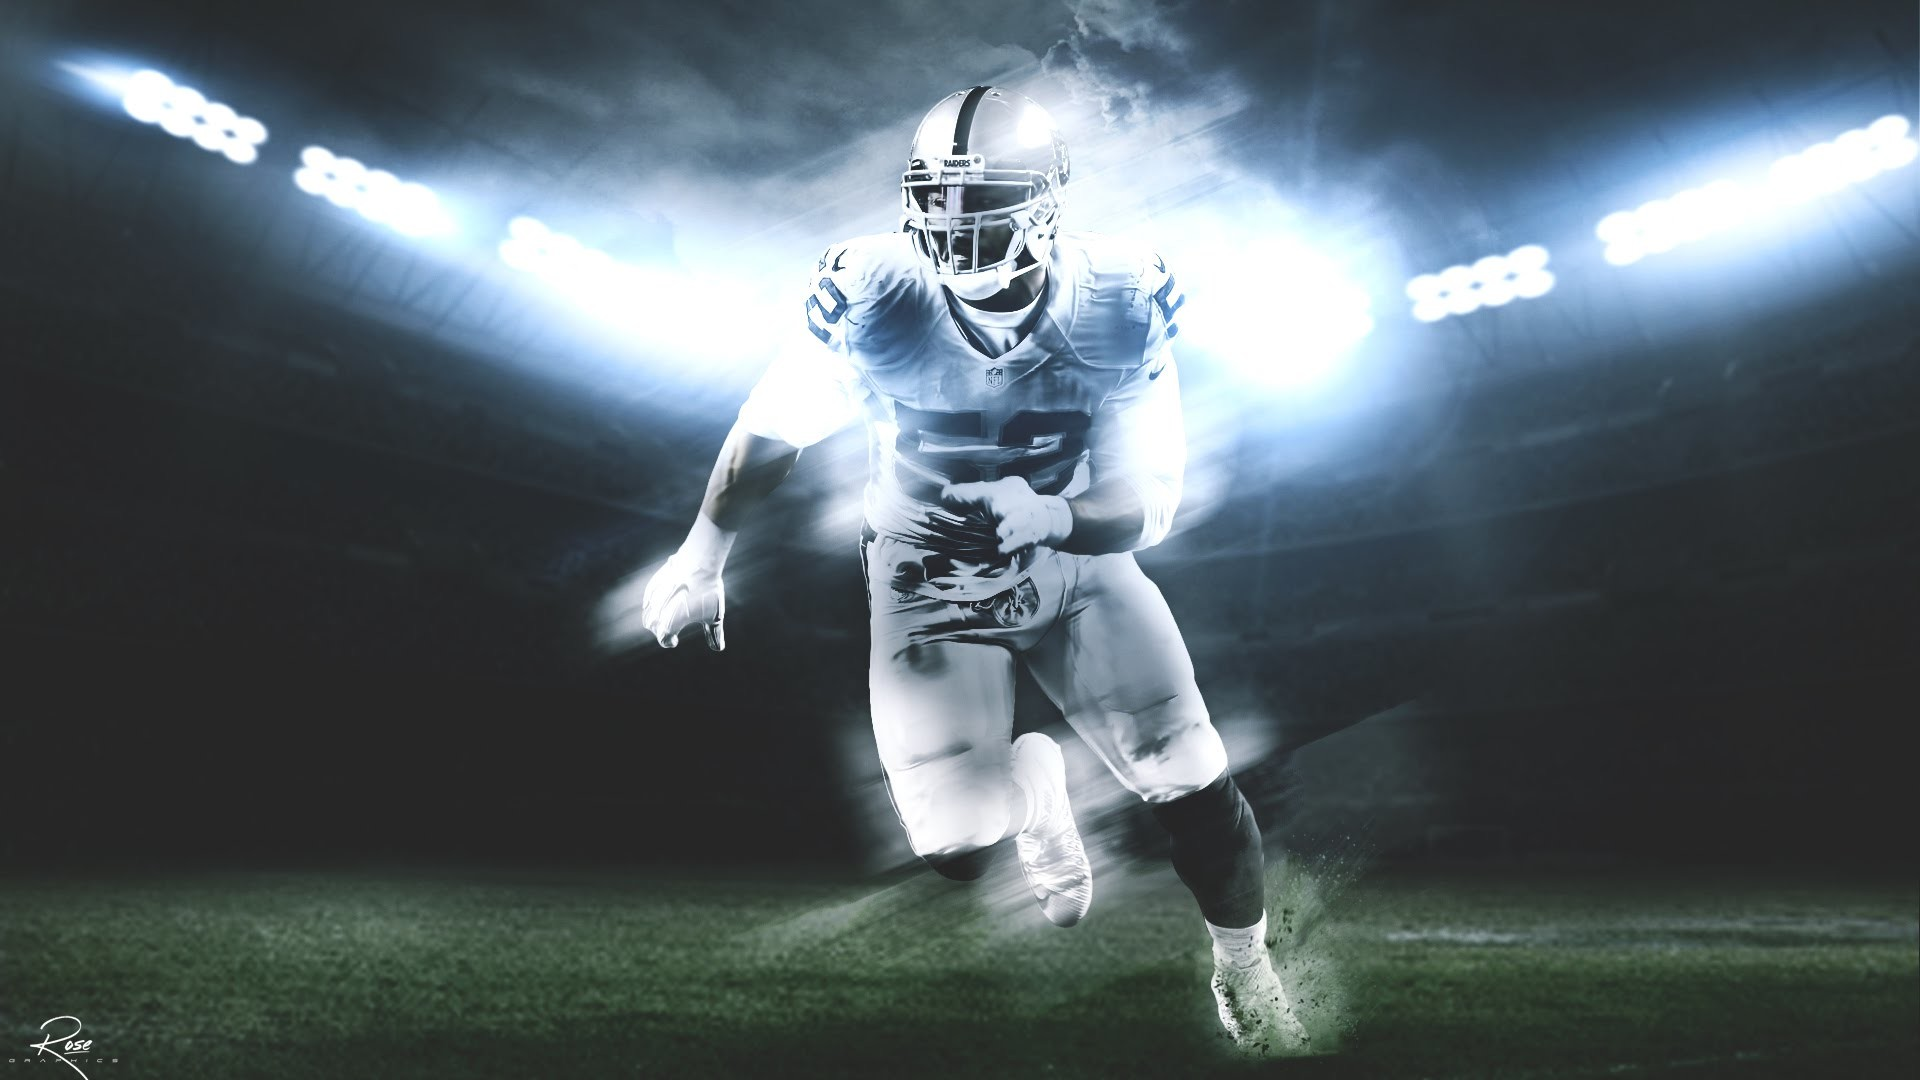 Hd Oakland Raiders Wallpaper Cool Raiders Wallpaper 71 Images